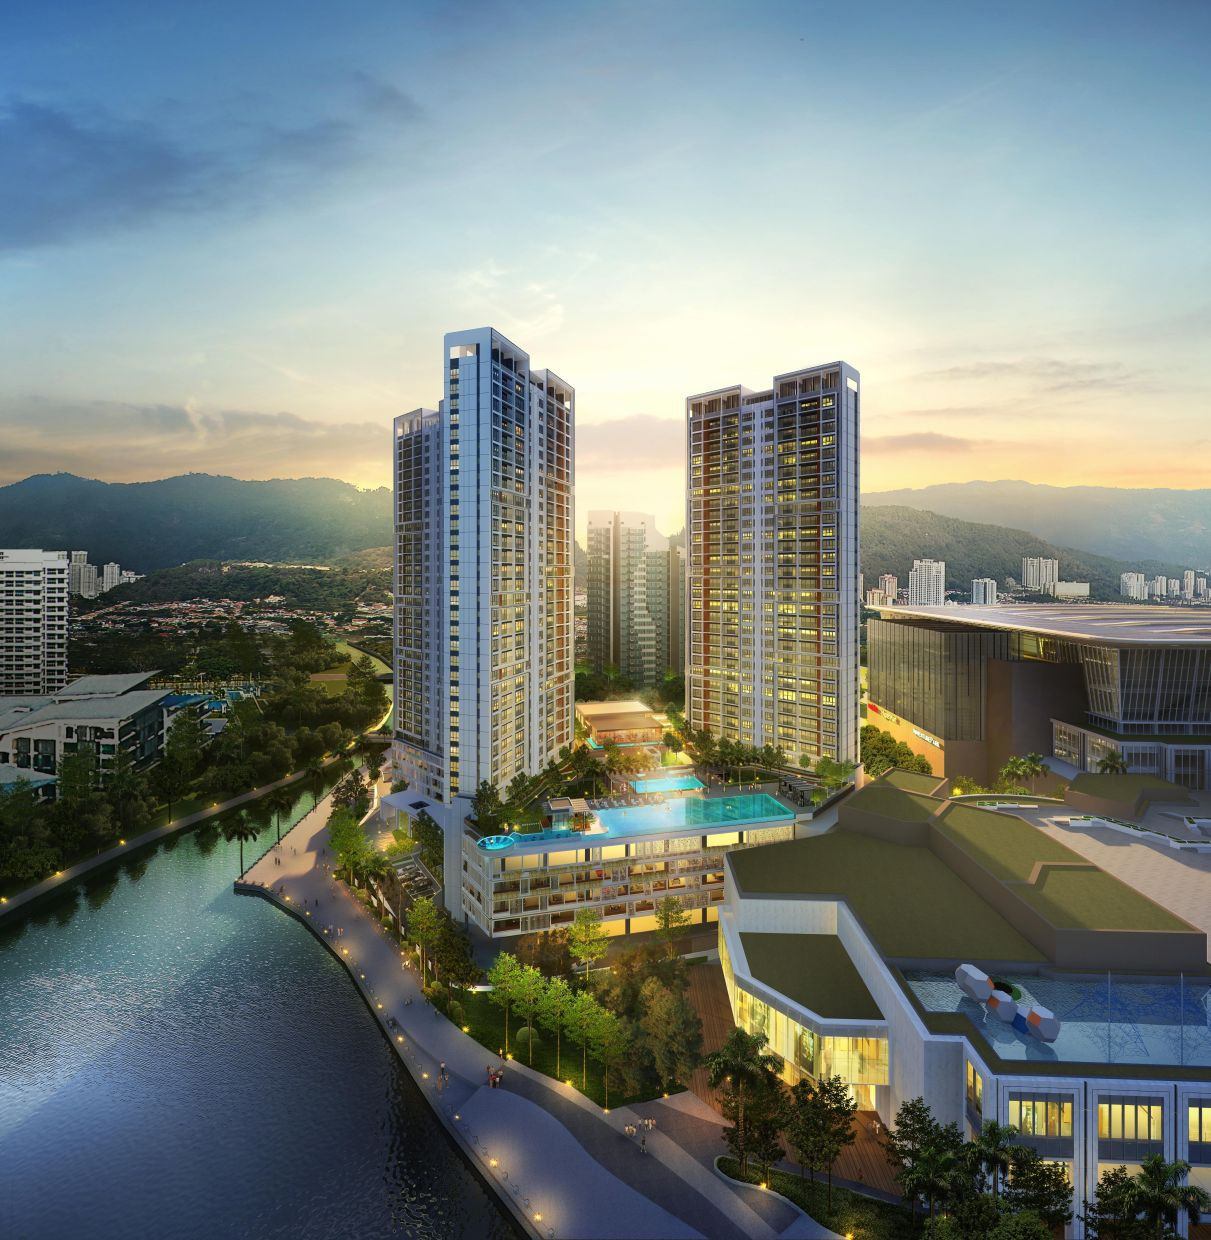 Mezzo, the first and a key residential component of The Light City with stunning views of the Penang Straits, had its soft launch in February this year.